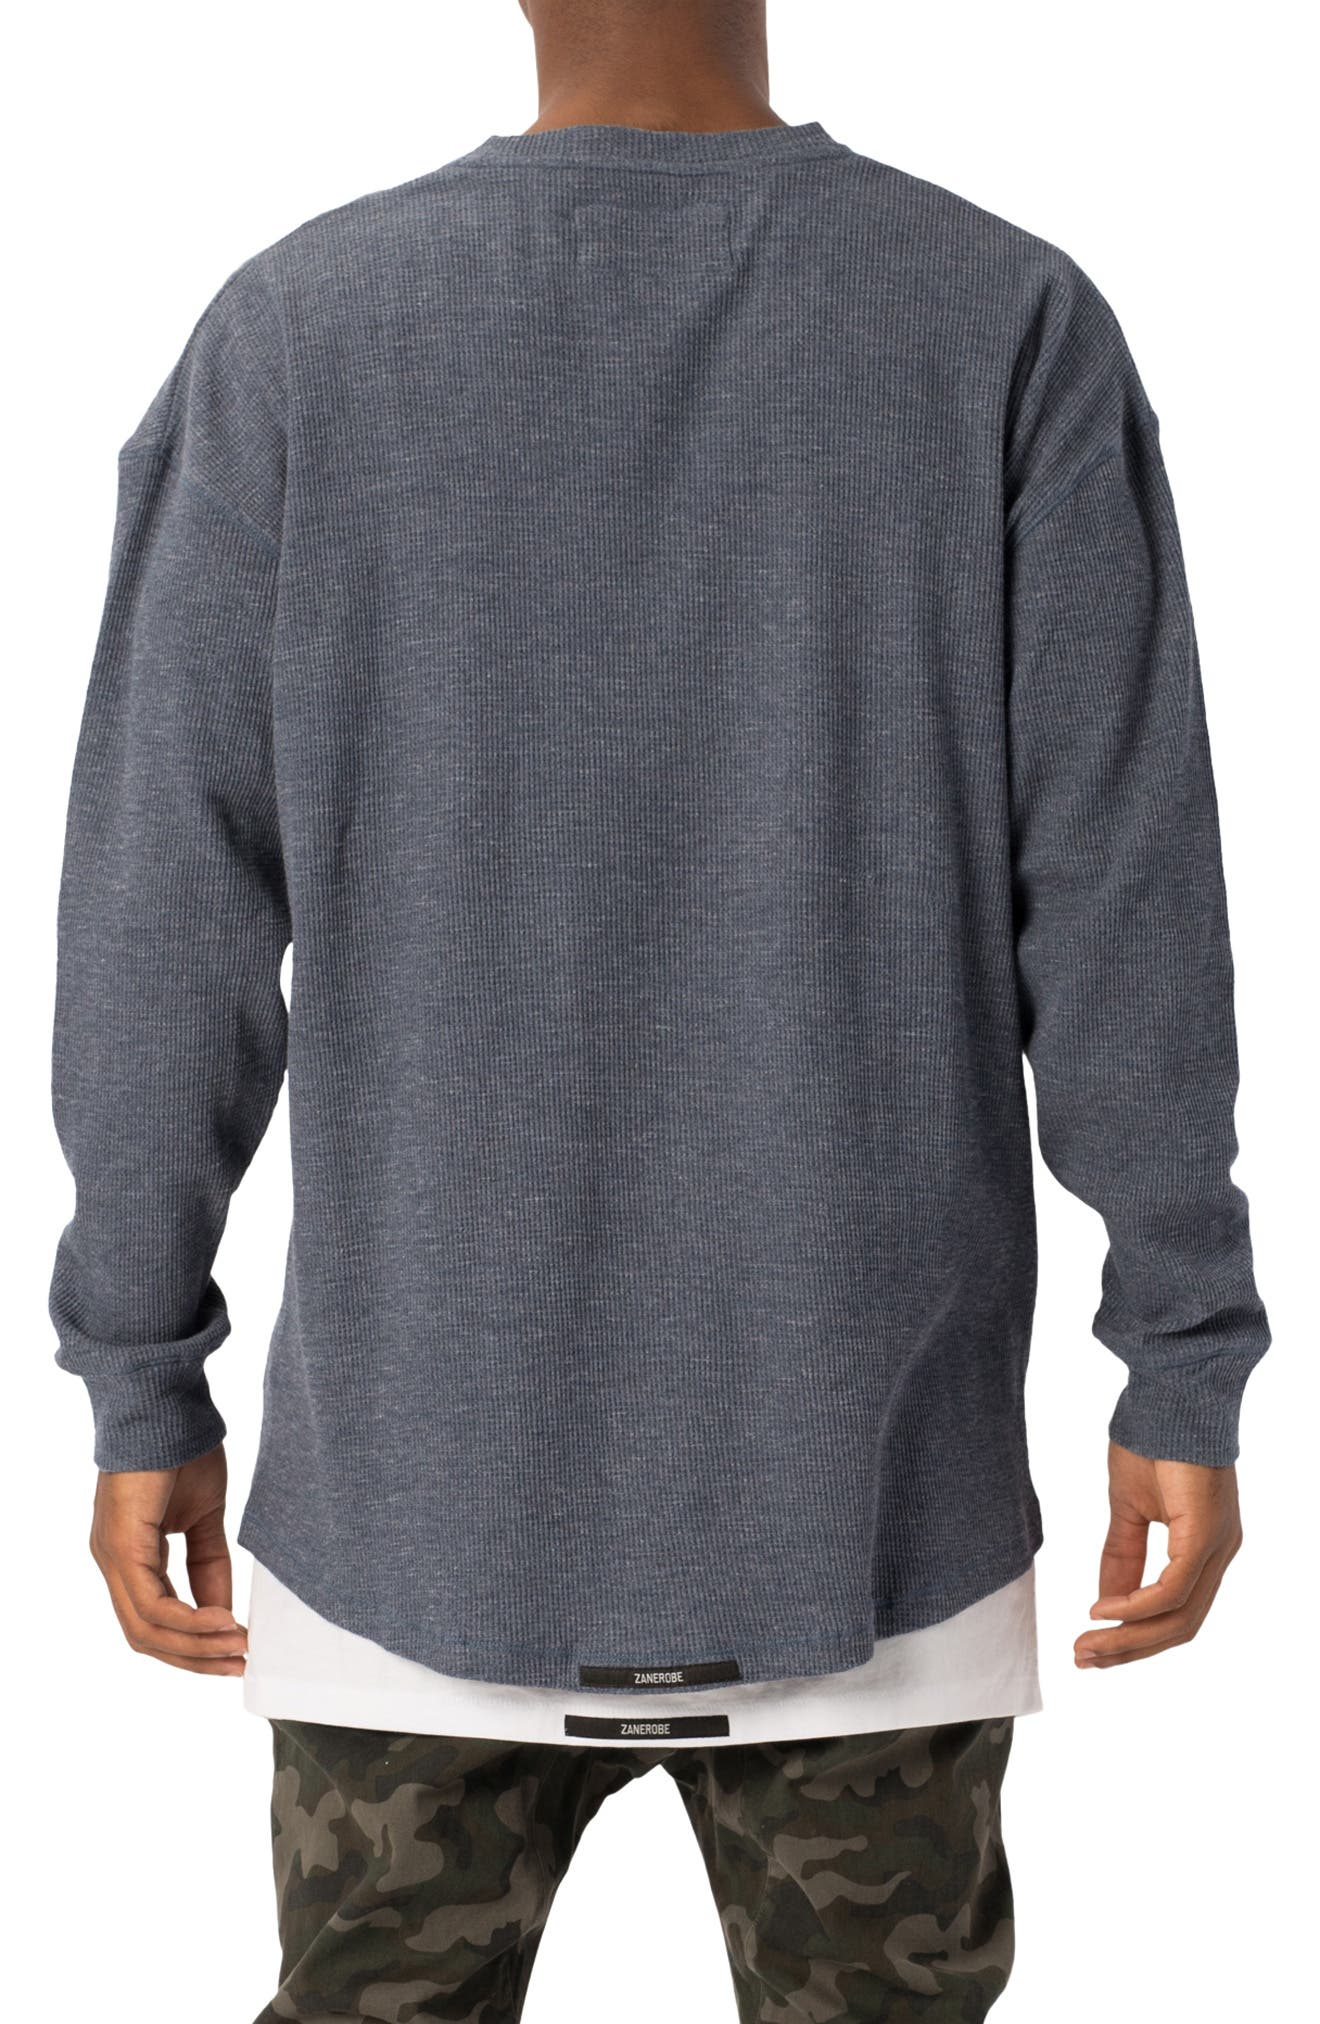 Rugger Waffle Knit Long Sleeve T-Shirt,                             Alternate thumbnail 2, color,                             DENIM MARLE